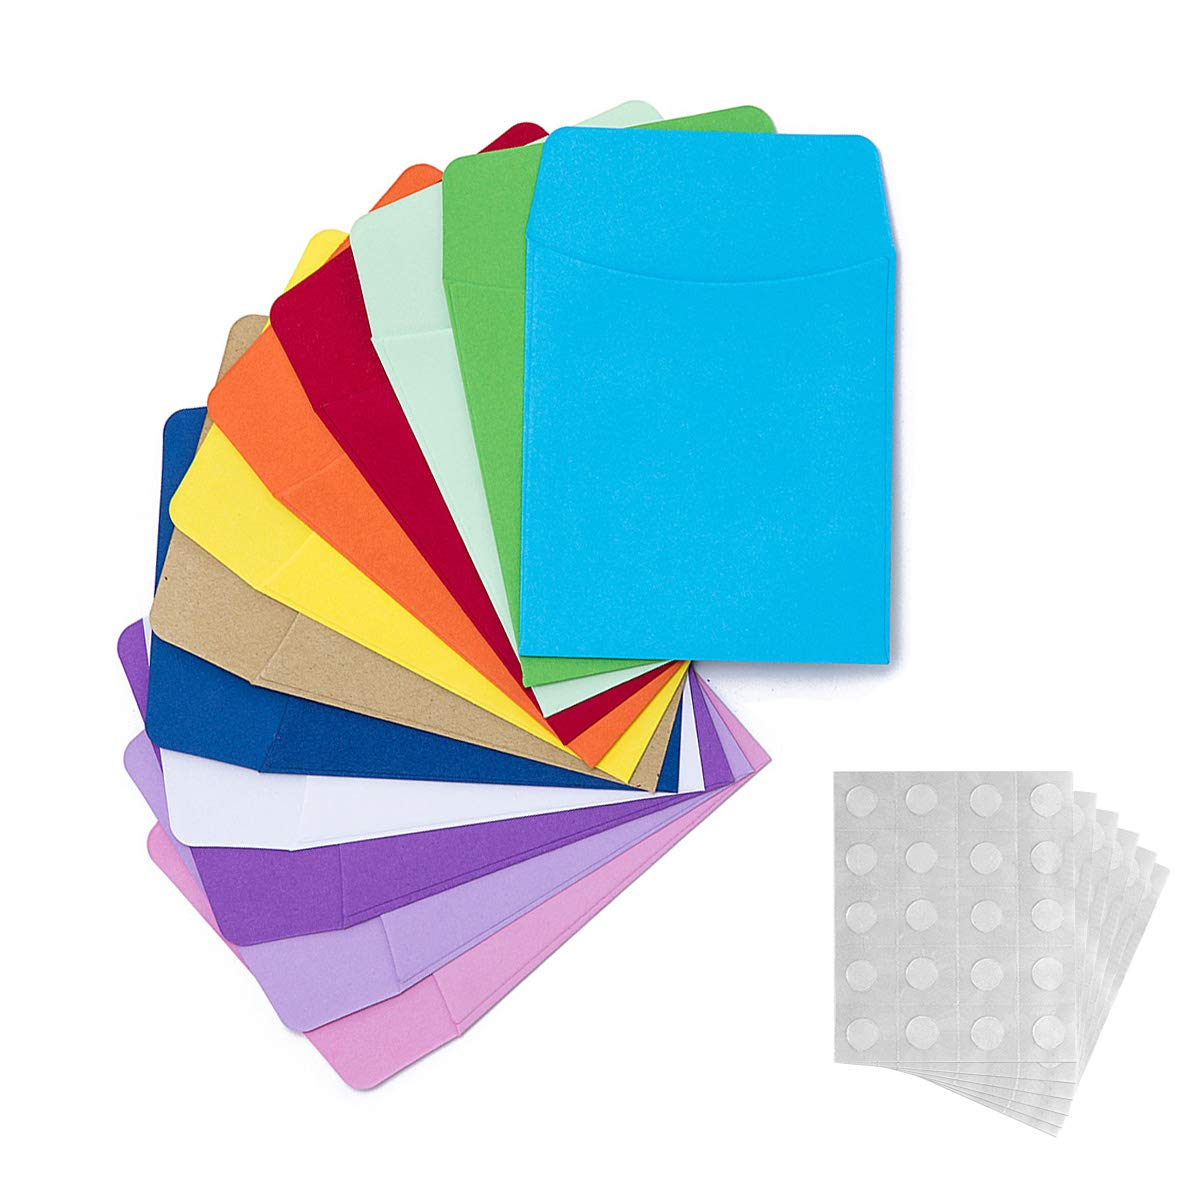 120 Pieces Non-Adhesive Library Card Pockets Small Envelopes with 120 Pieces Adhesive Double Sided Glue Points for School, Library, Office Task Trackers and Gift Tag (Pocket Envelopes) by peony man